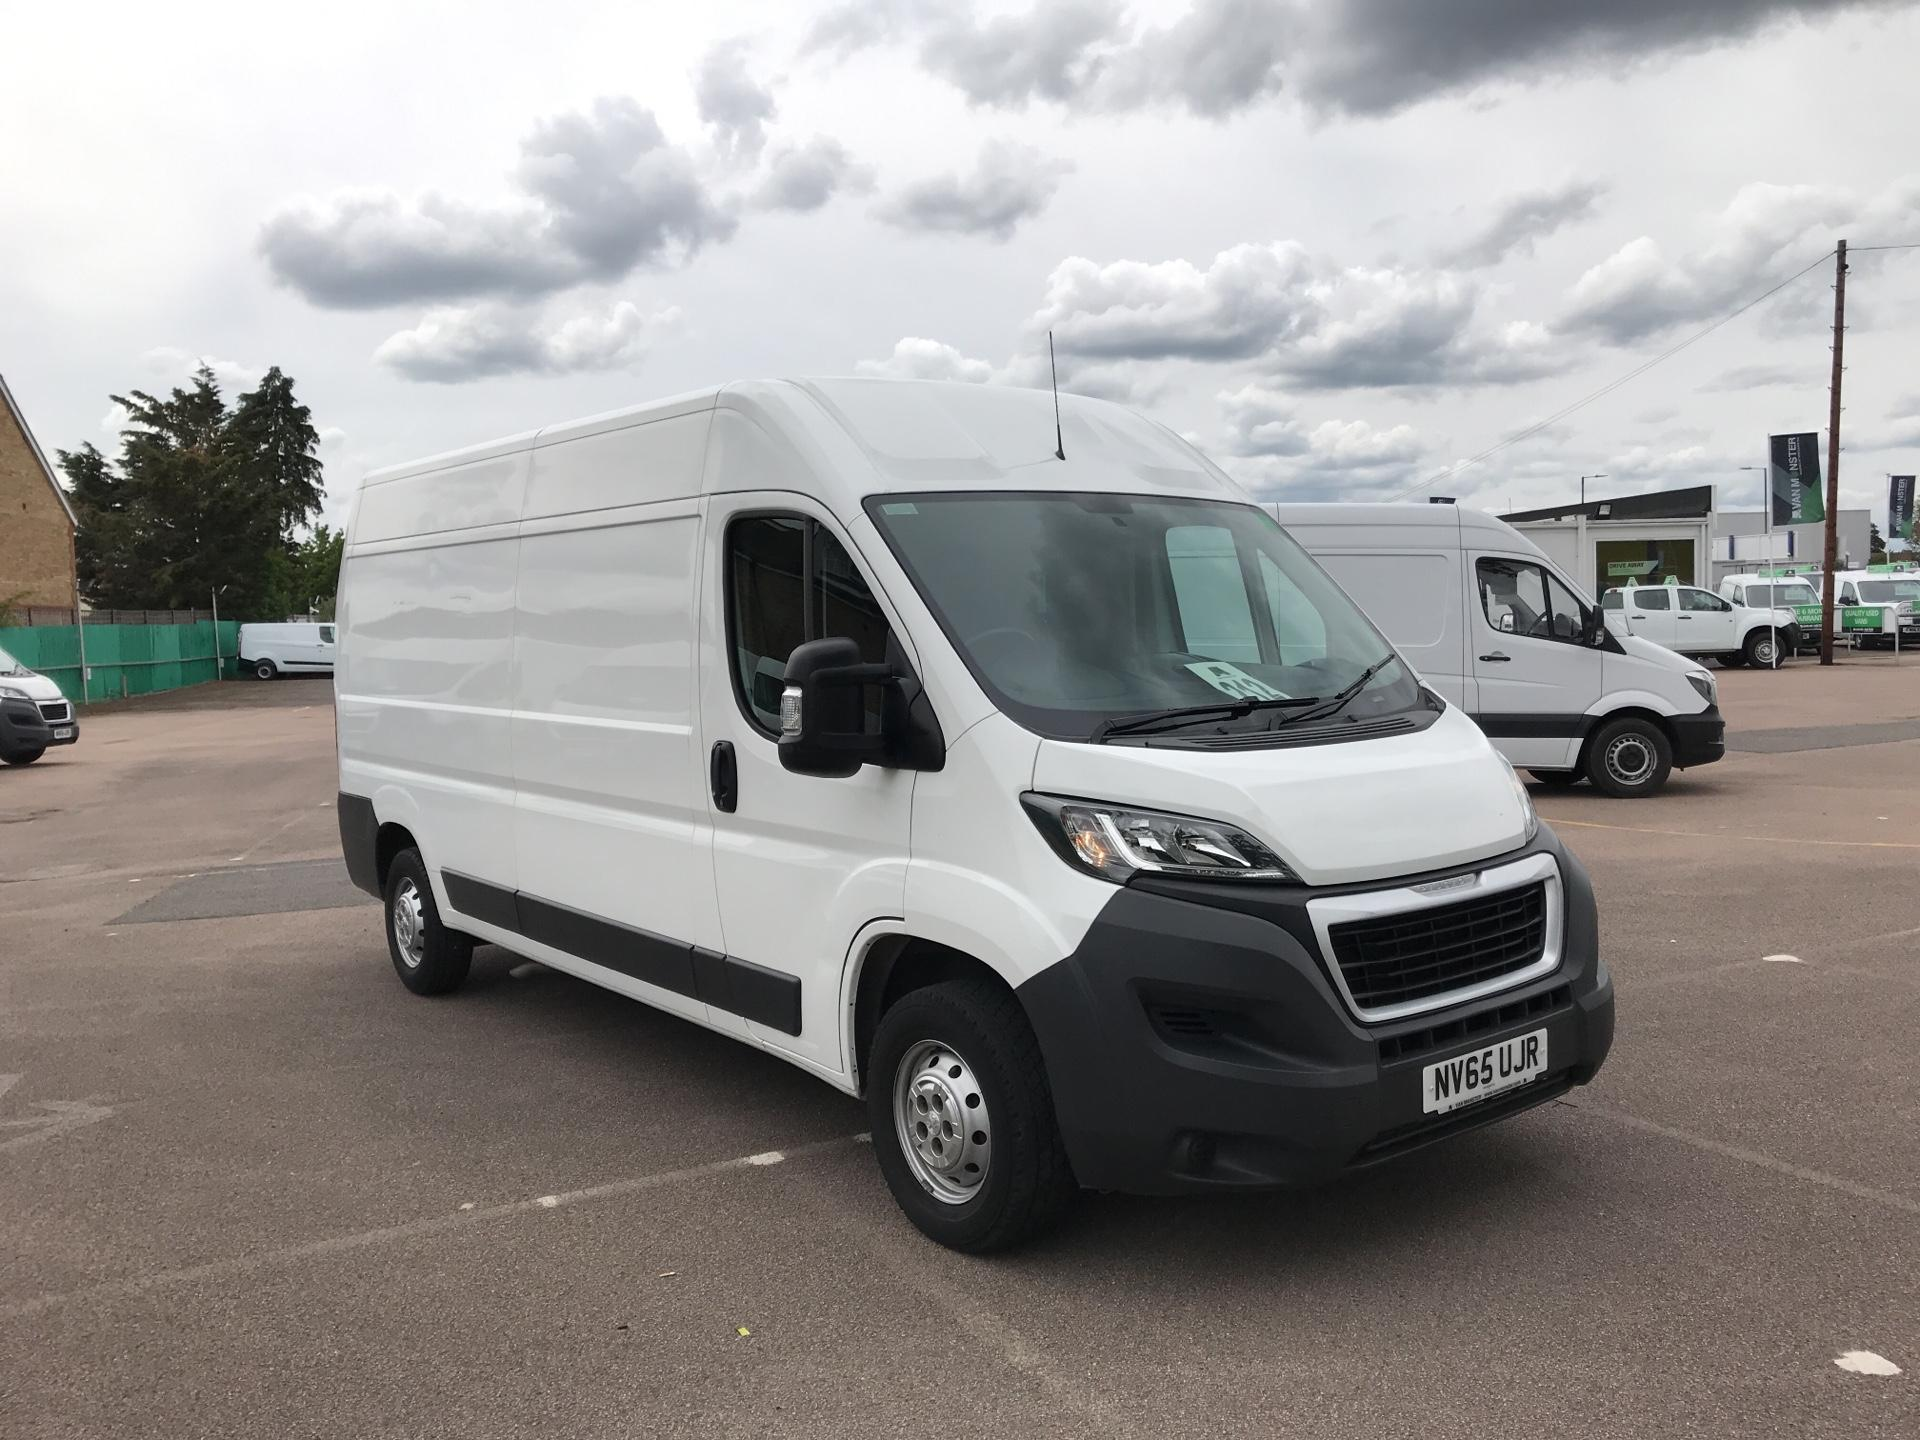 2016 Peugeot Boxer  L3 H2 2.2 130PS VAN EURO 5 *VALUE RANGE VEHICLE CONDITION REFLECTED IN PRICE* (NV65UJR)